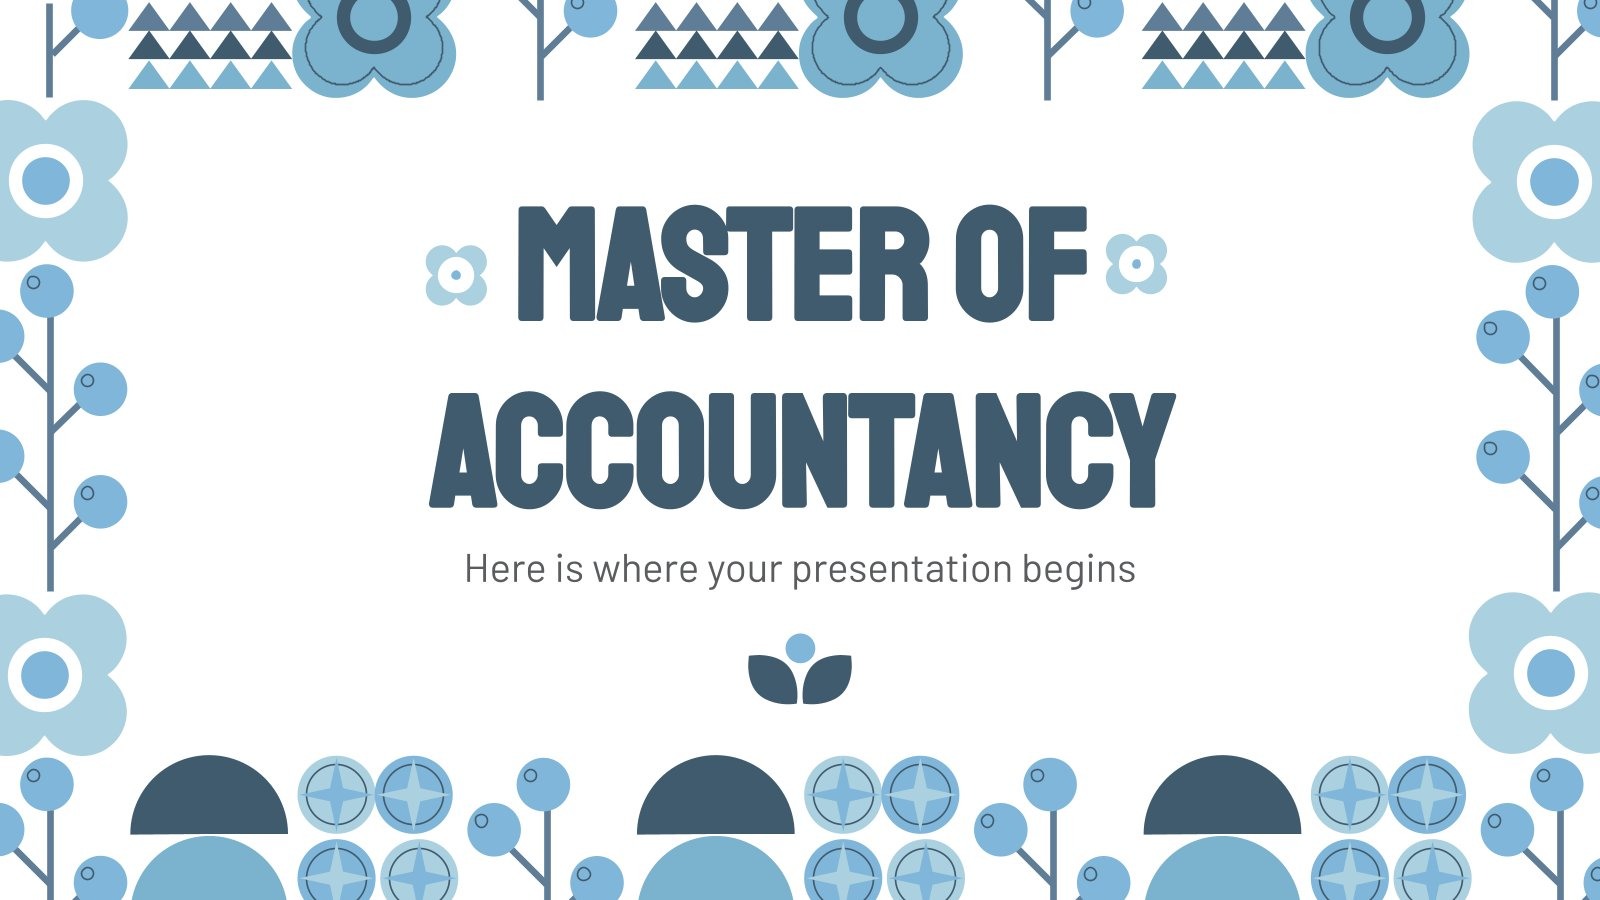 Master of Accountancy presentation template